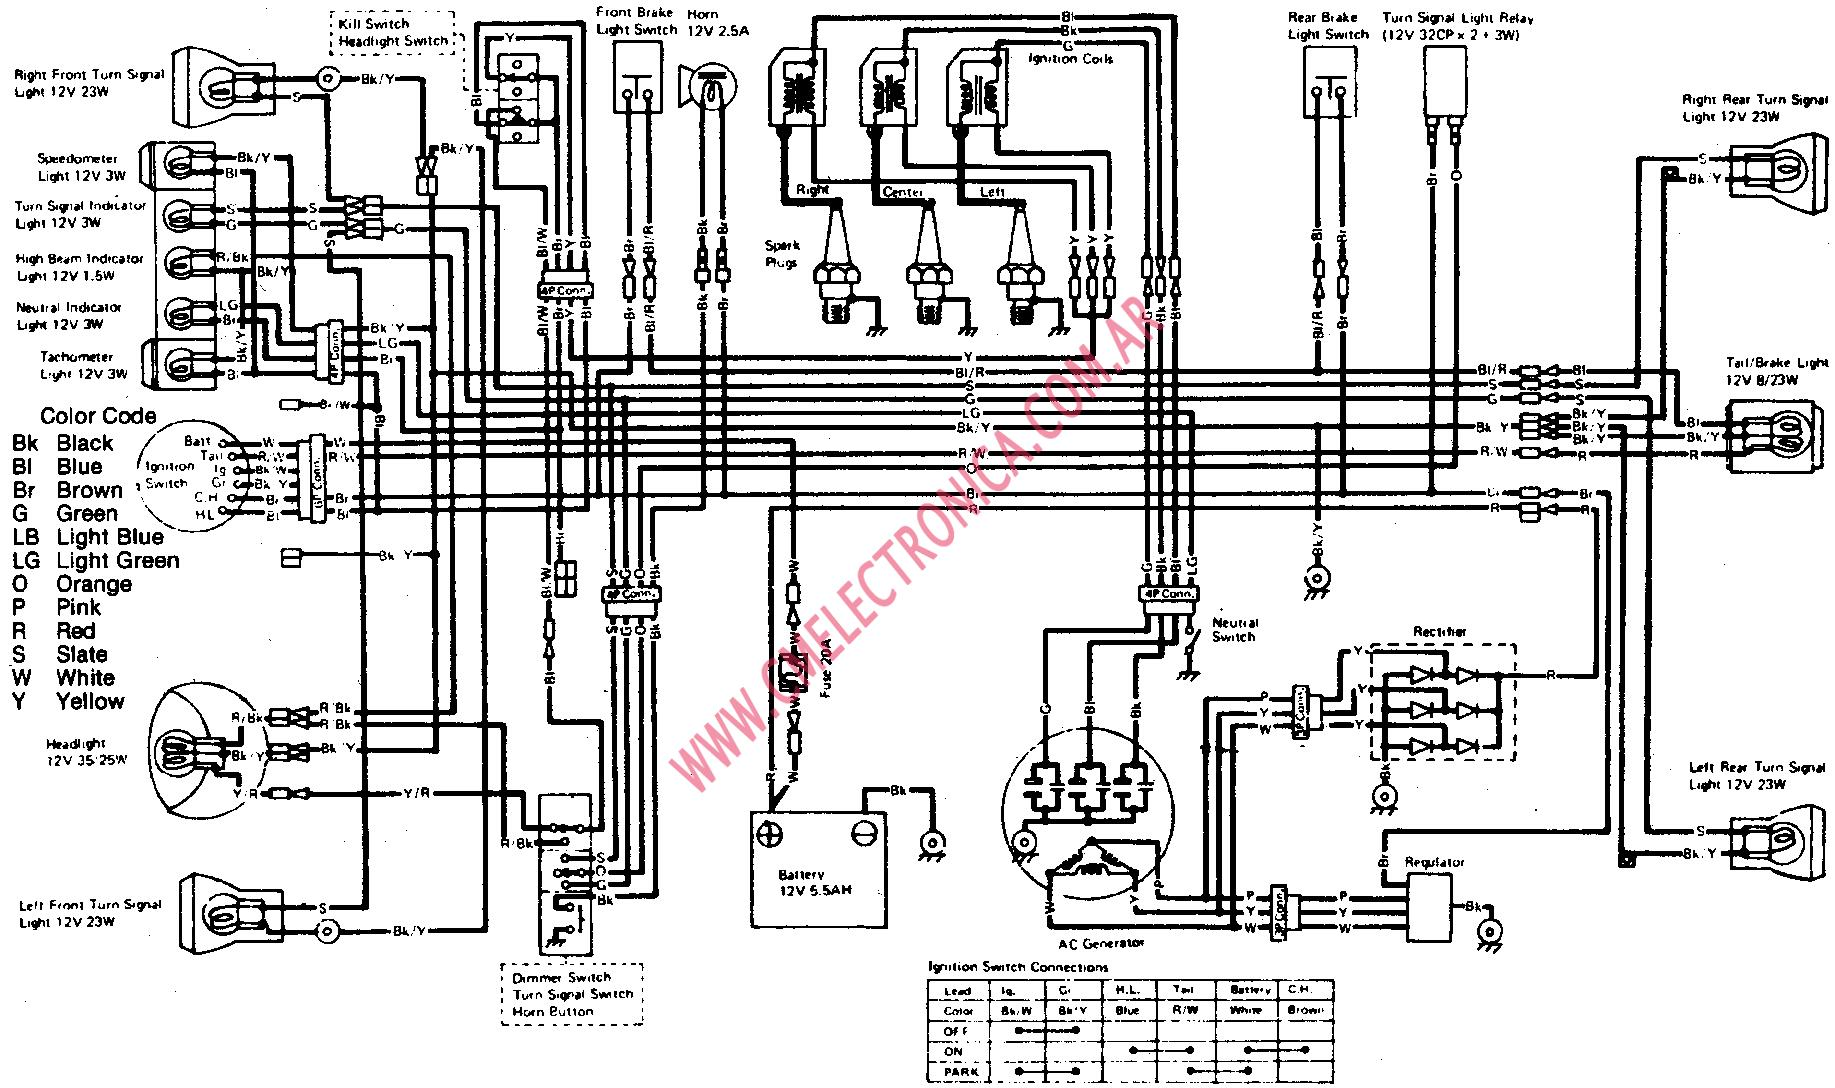 vespa primavera wiring diagram with Kawasaki S1b C Kh250 S3 on odicis likewise Sears Allstate Parts furthermore Parts Of A Trolley likewise Vespa Et4 Exploded Diagram furthermore Schemi 20elettrici.